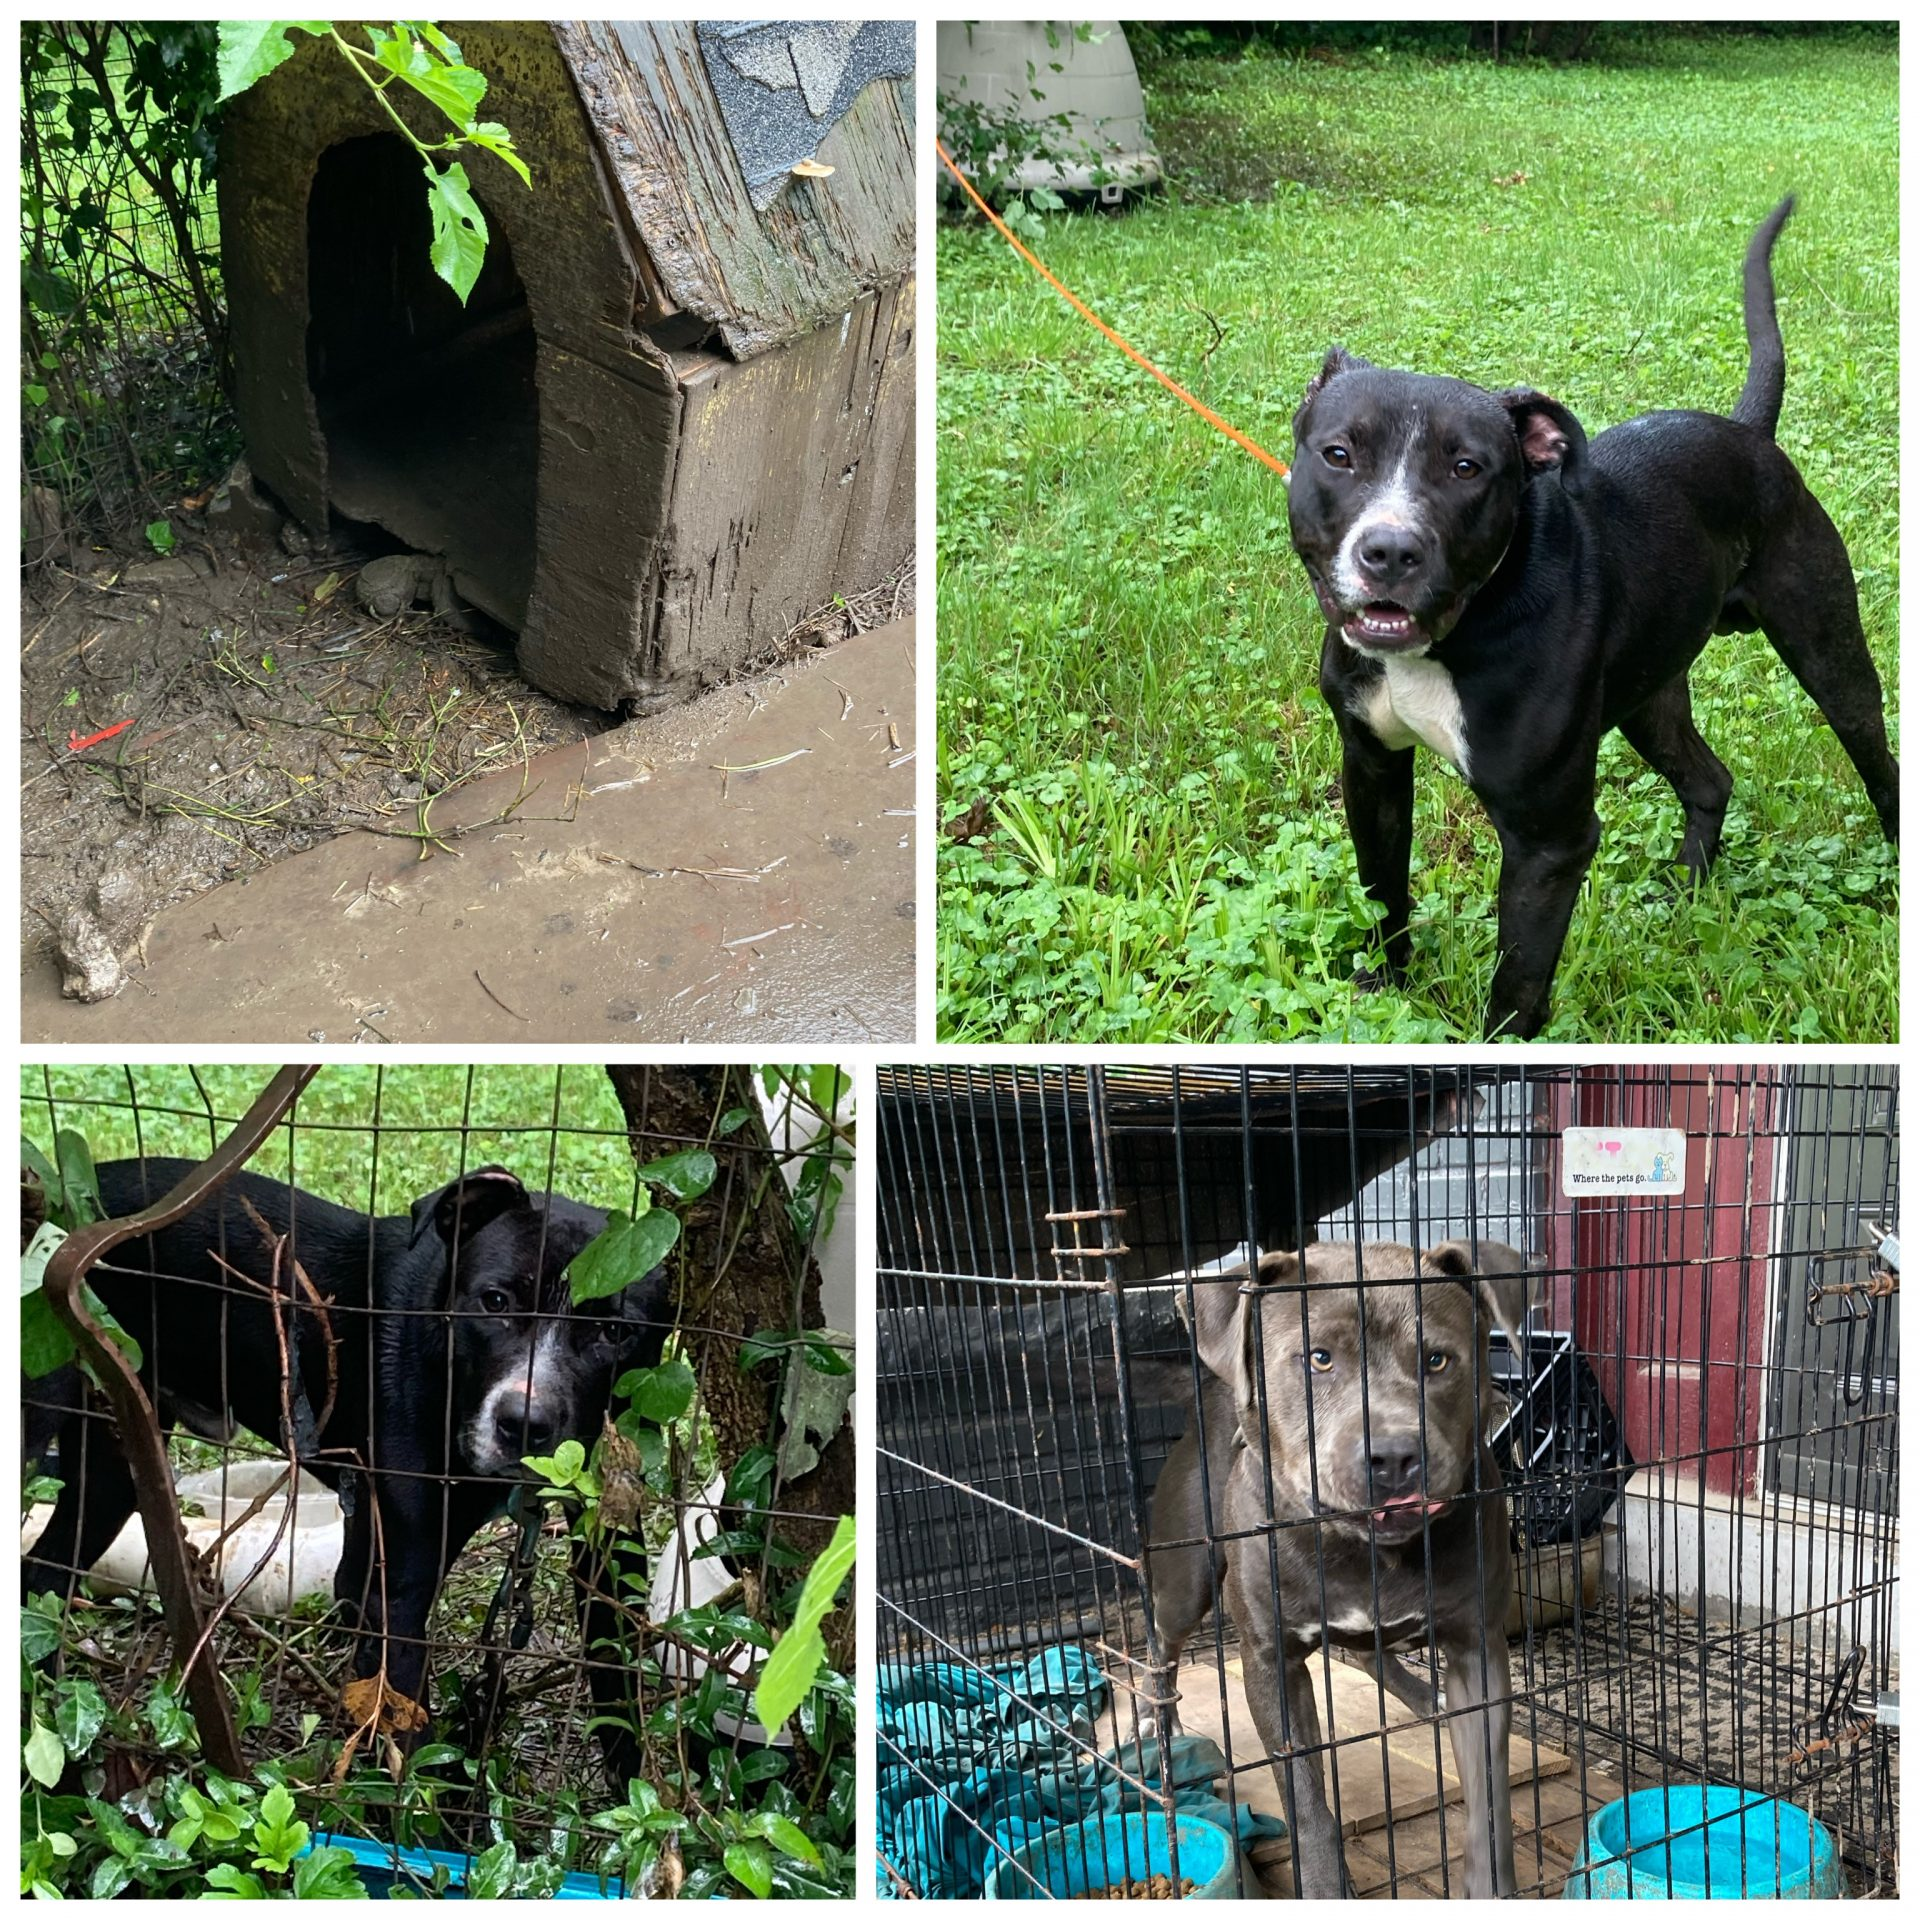 Outreach dogs like this need your help!